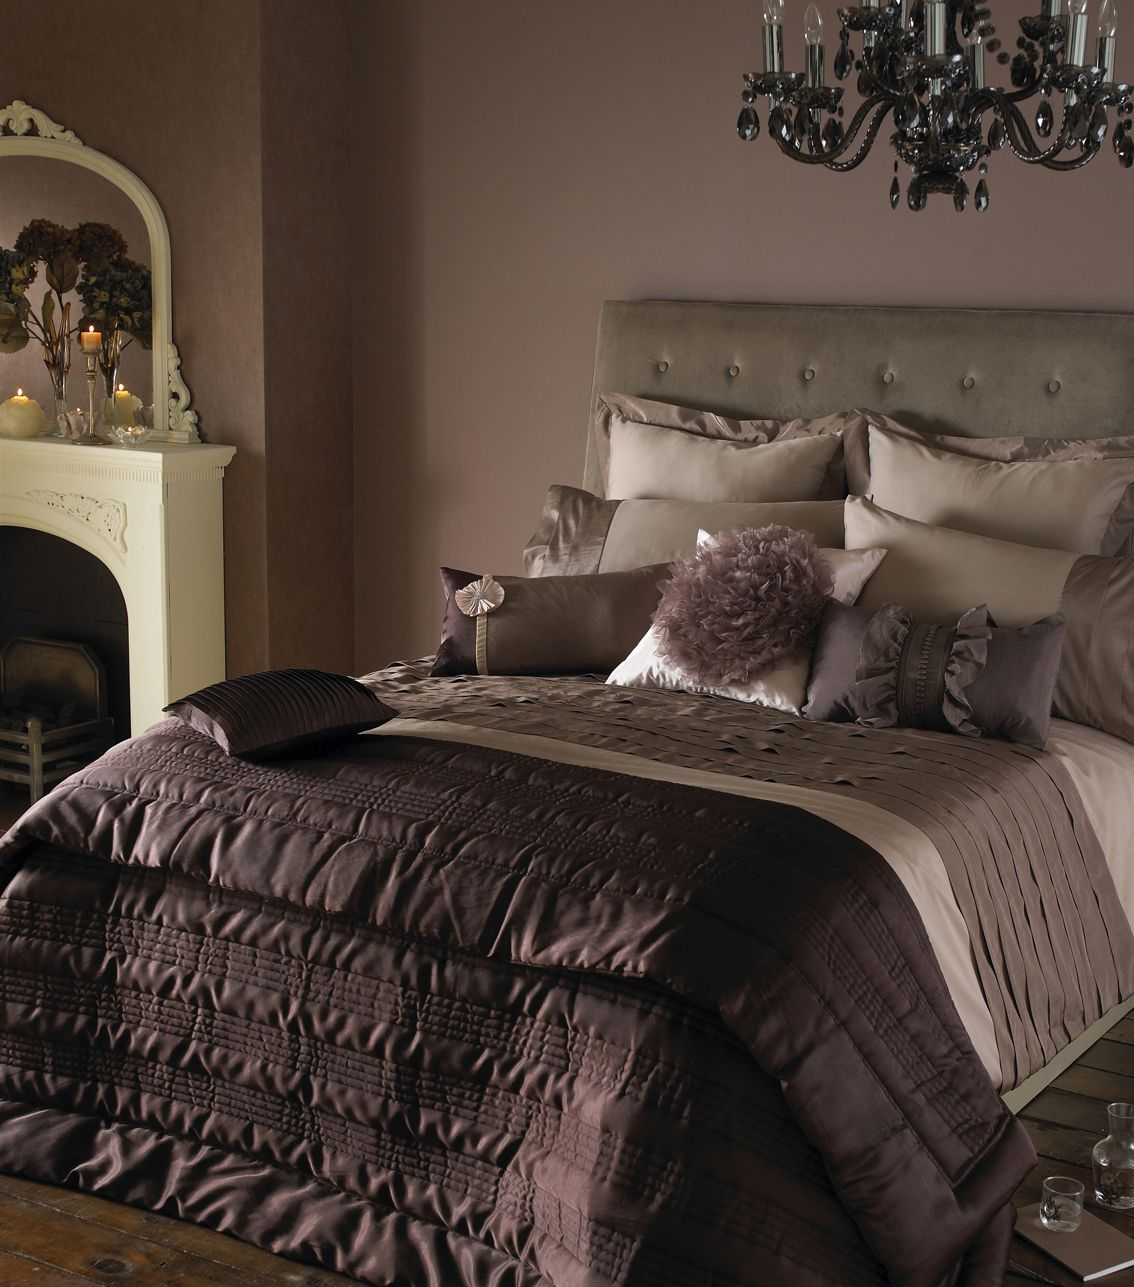 My Bedroom: This Is How I Want My Bedroom, Even My Husband Said He